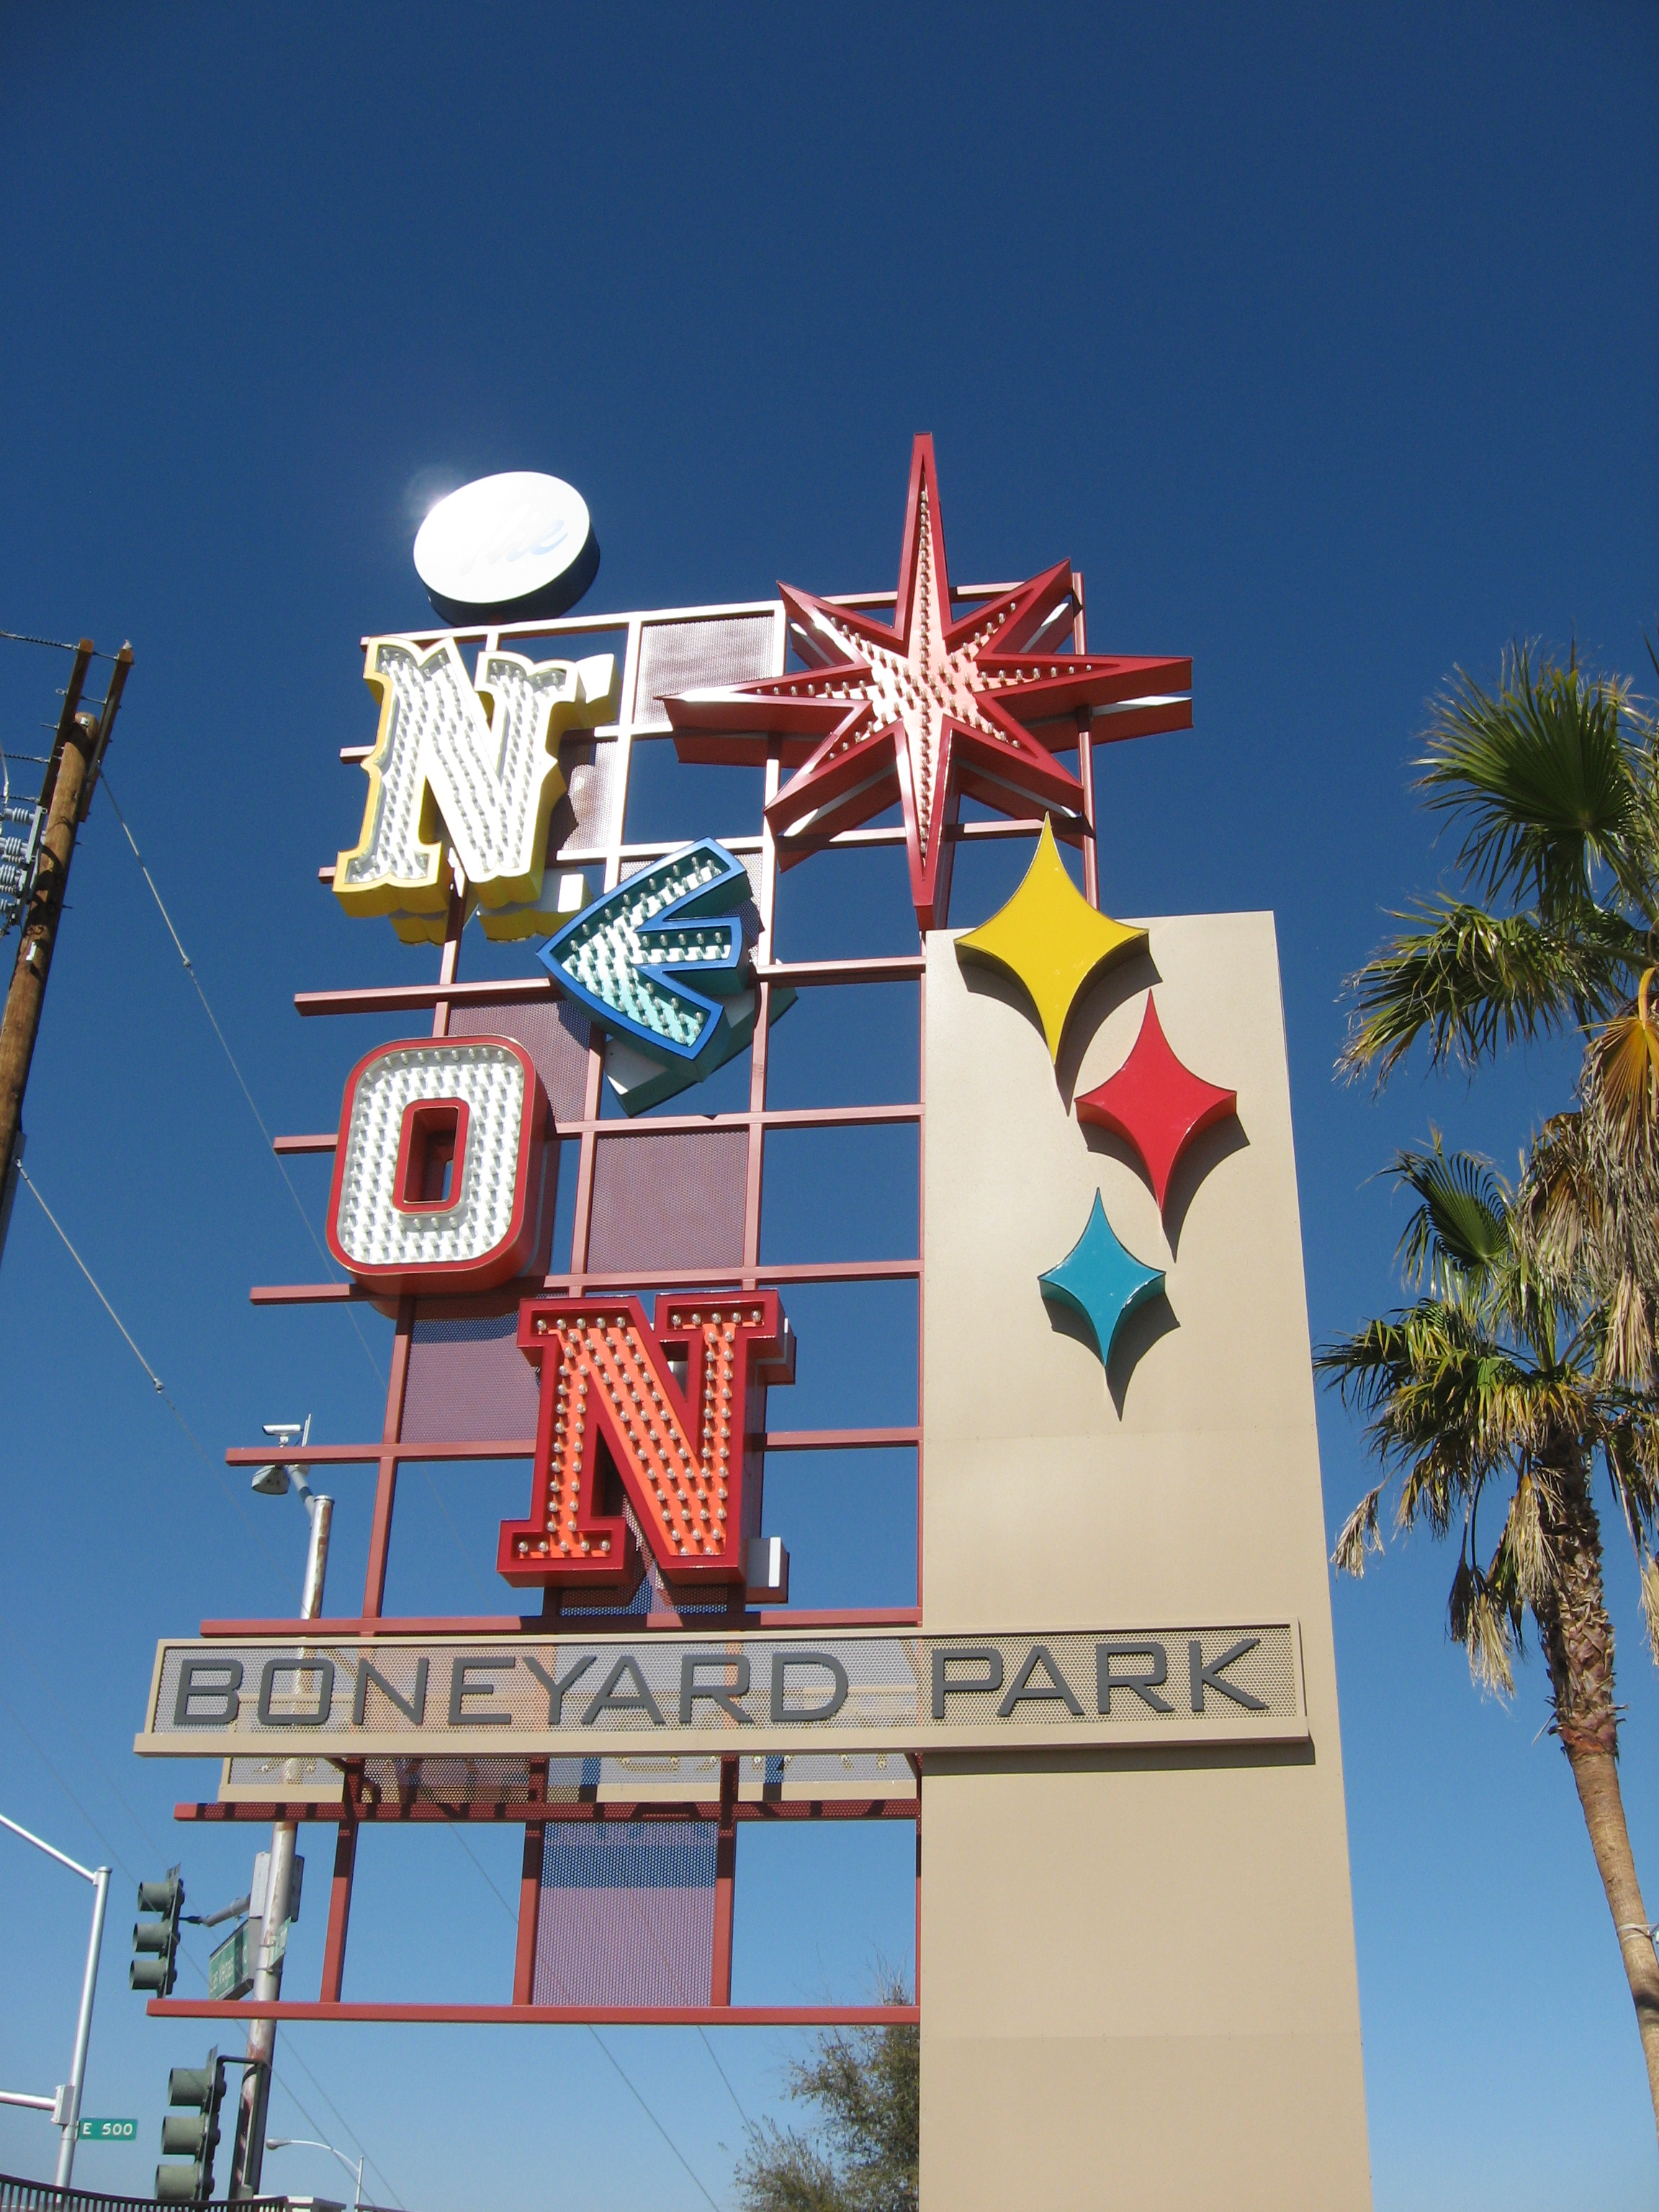 In my mind, the Boneyard Park is a must see Las Vegas attraction, way more interesting than The Strip.  It is much more authentic and offers an up close and personal look at one of the iconic artifacts of urban design - the neon sign.